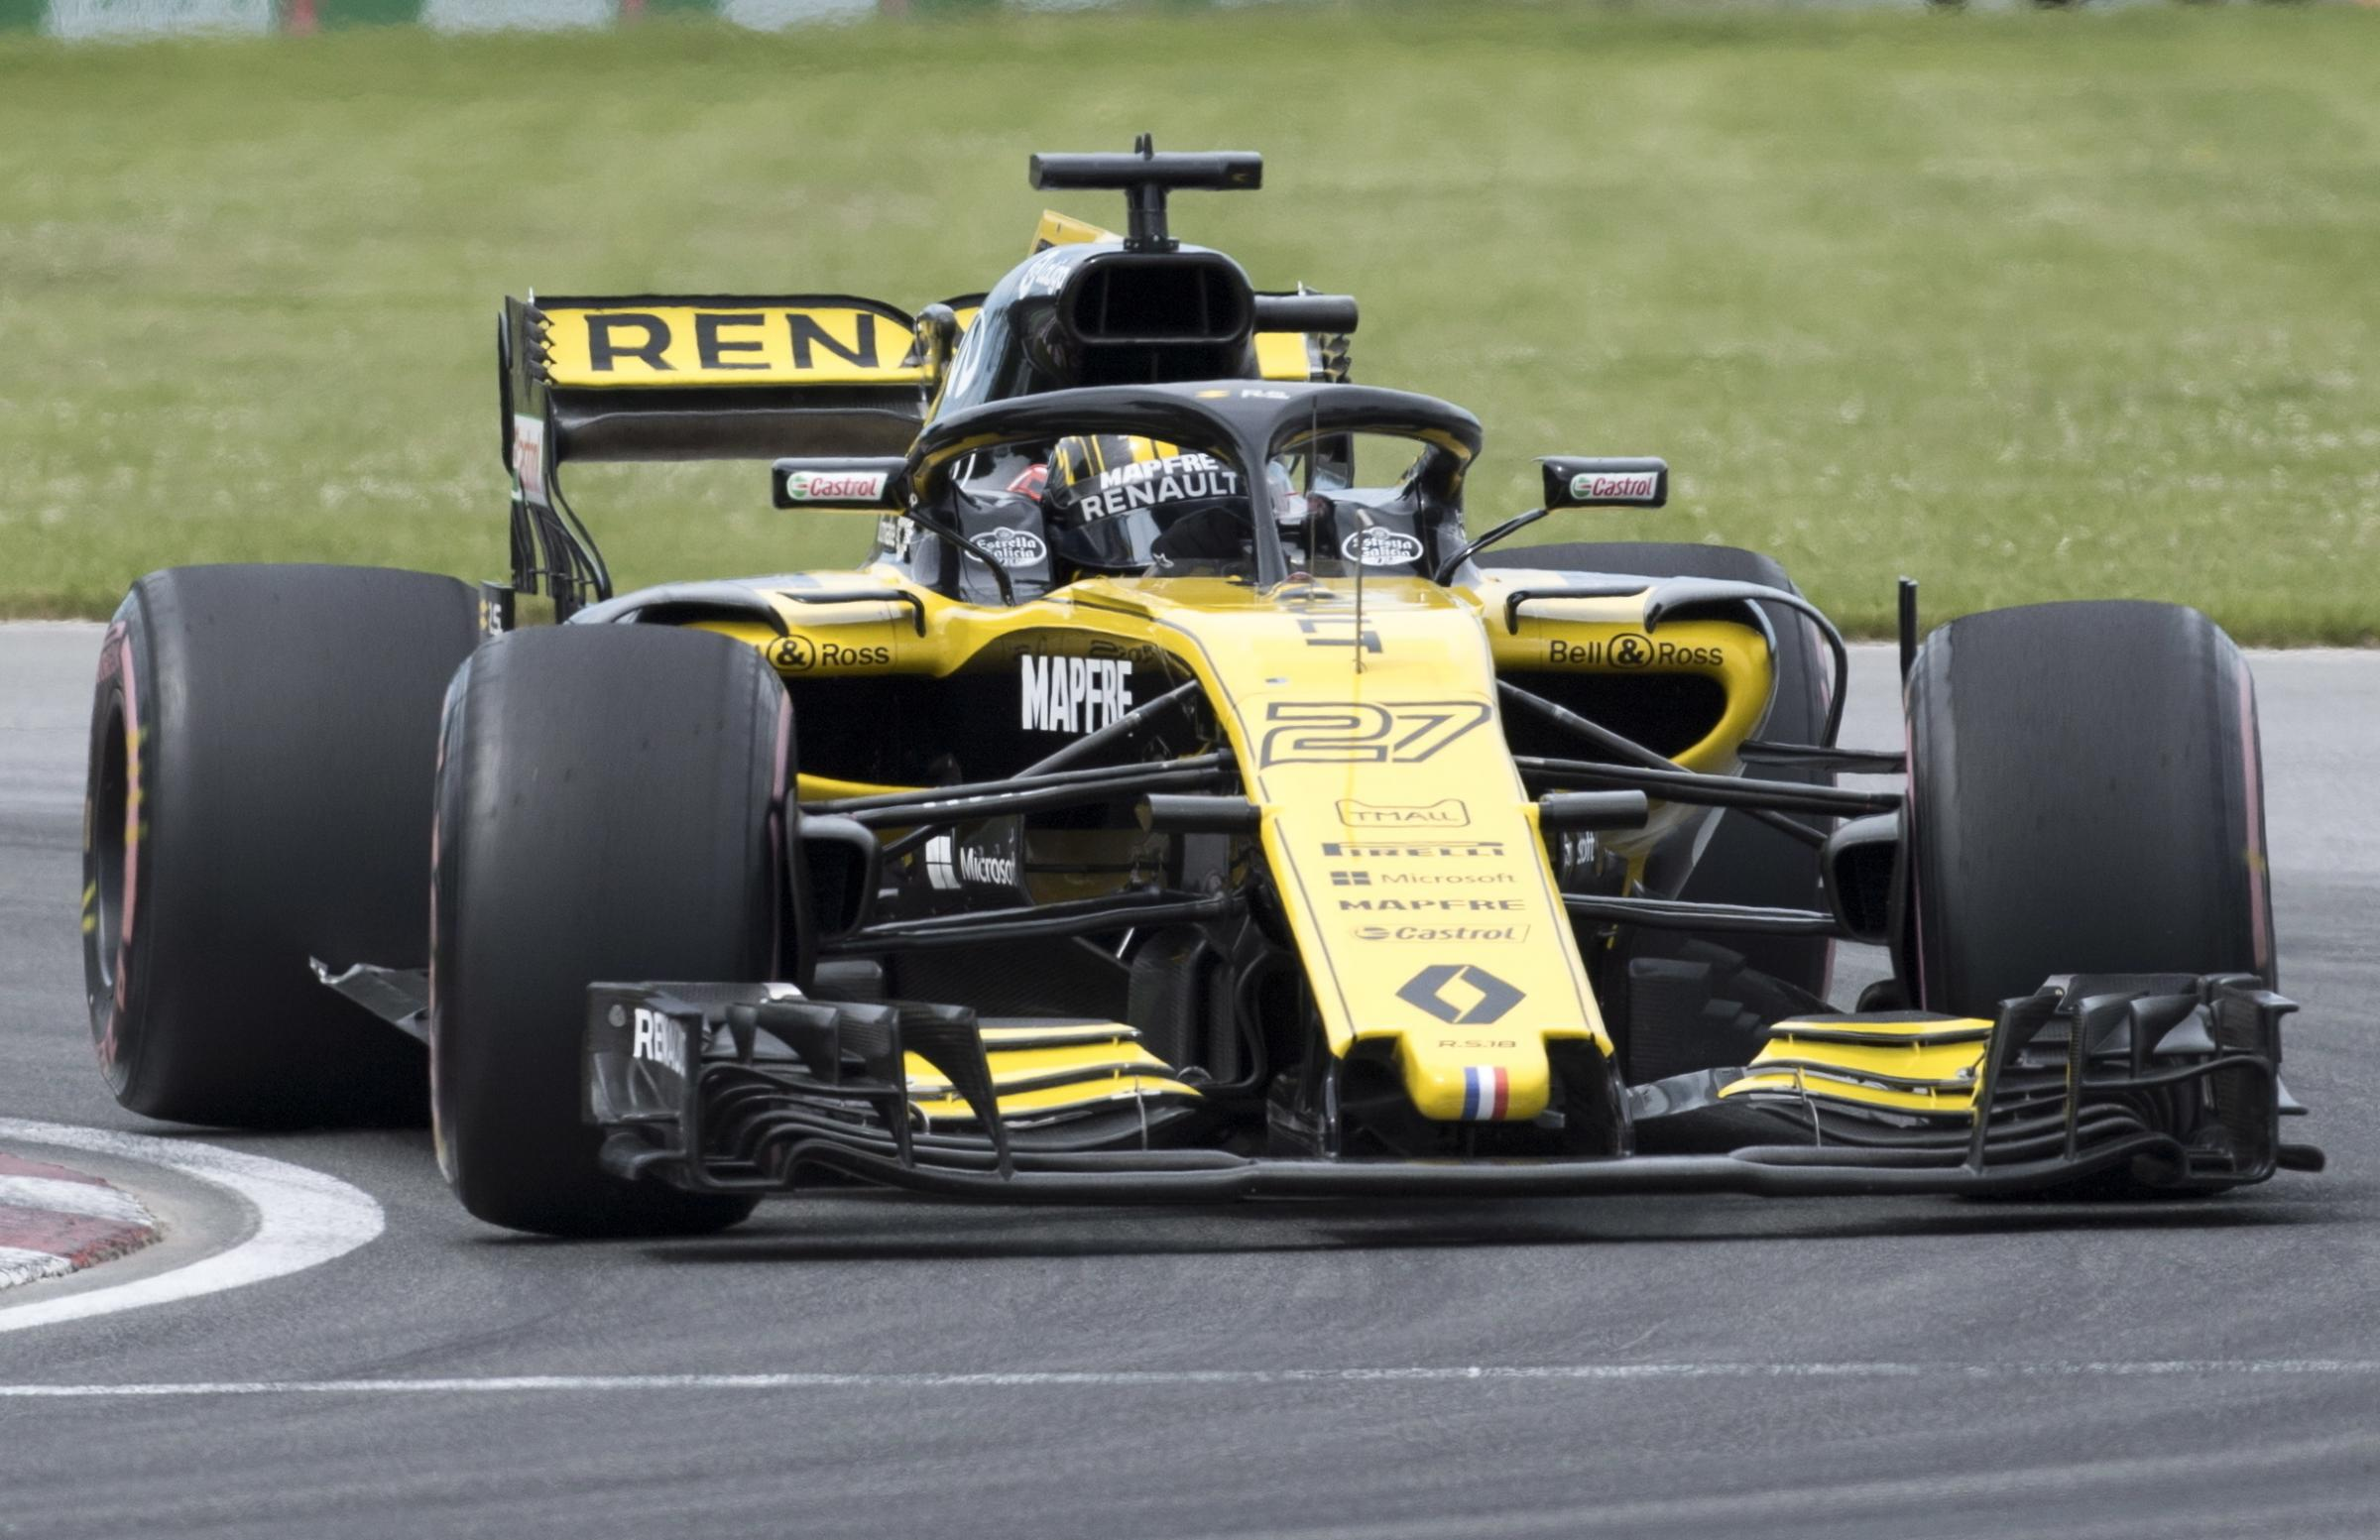 Renault driver Nico Hulkenberg of Germany drives through the Senna corner at the Canadian Grand Prix  Picture: Graham Hughes/The Canadian Press (via AP).